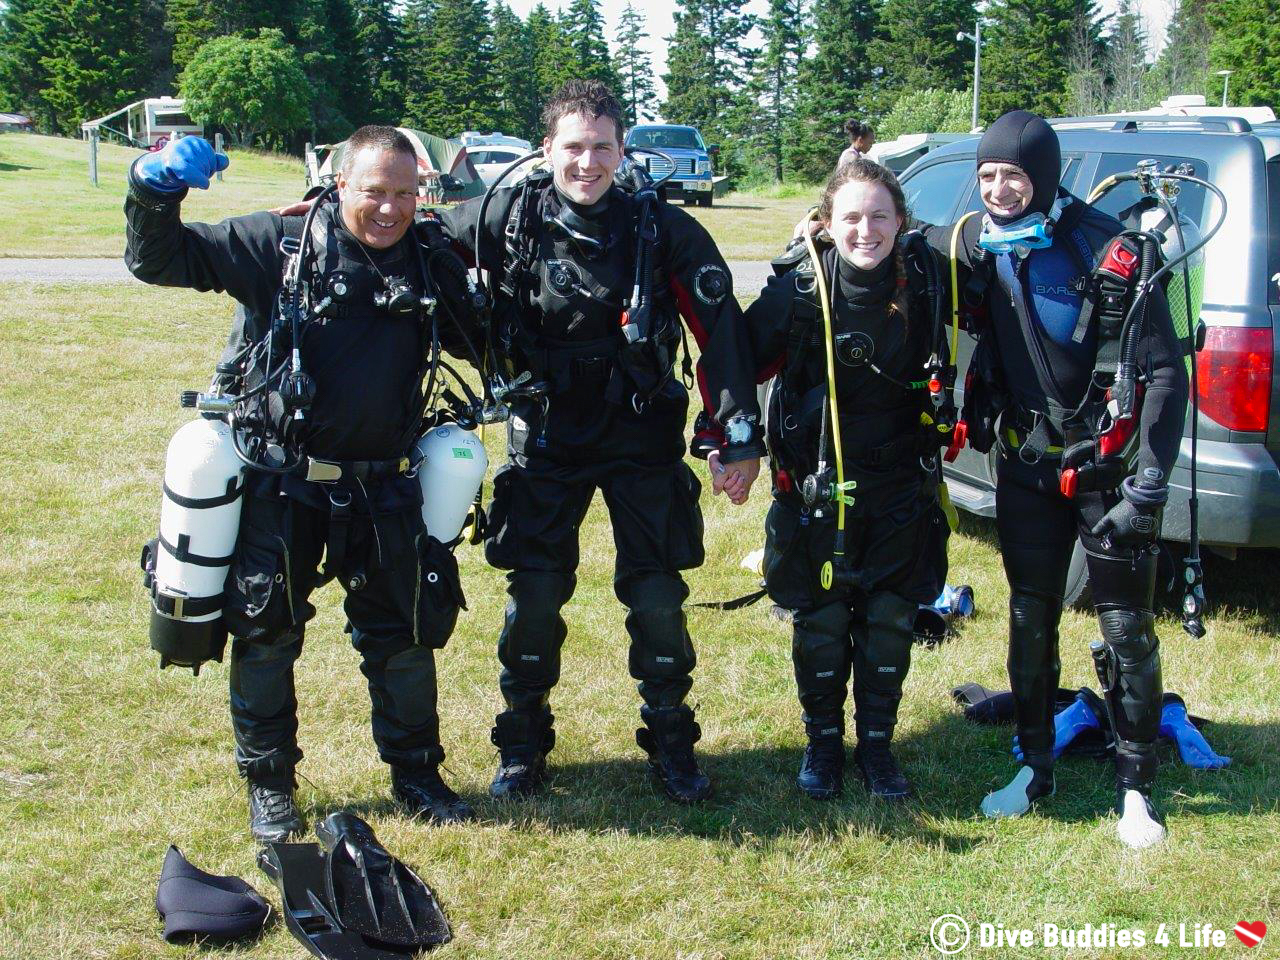 Dad, Joey, Joe and Ali Scuba Diving on Deer Island in the Advanced Open Water Course